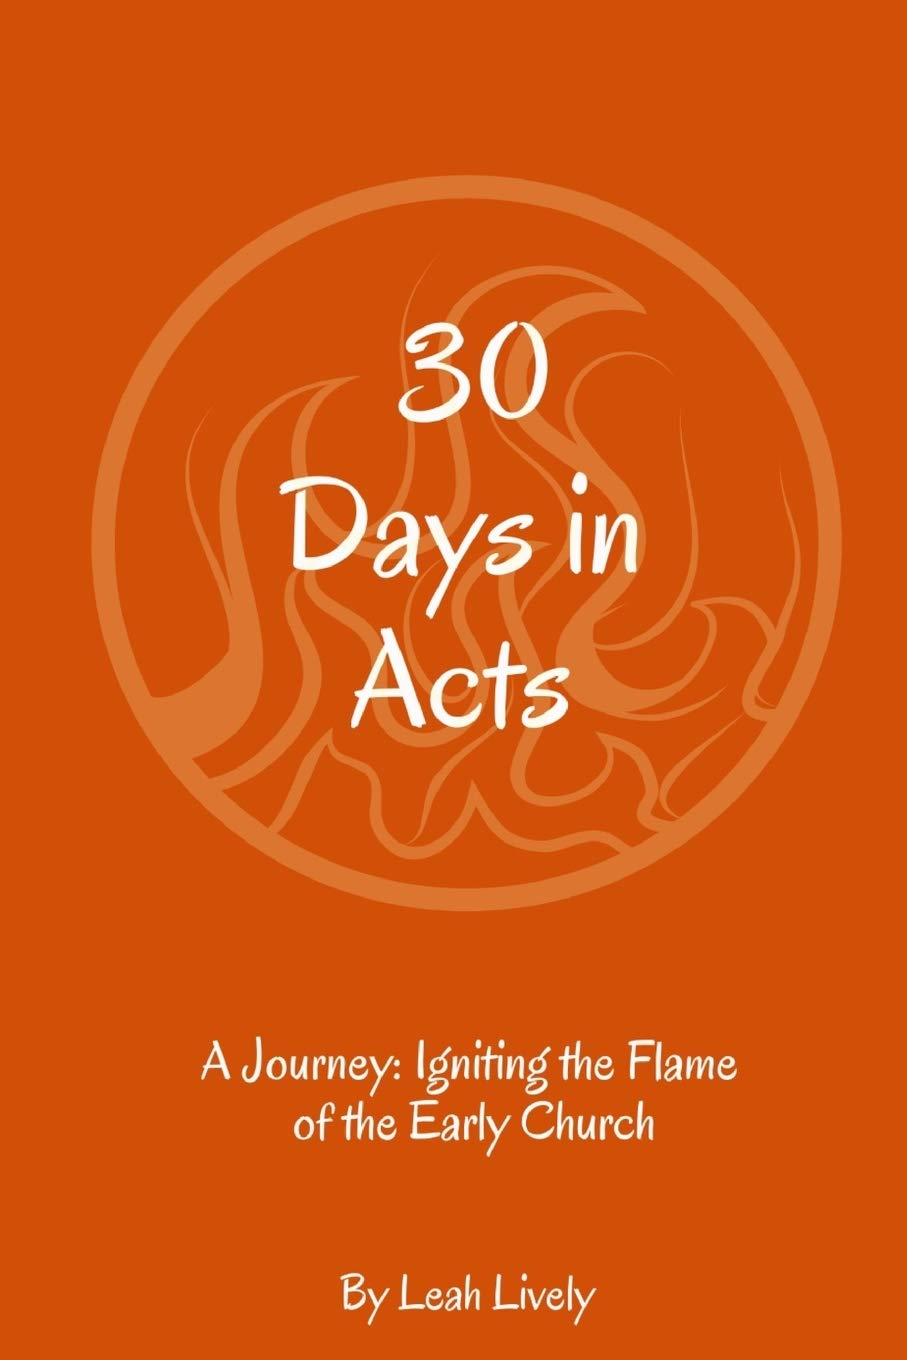 30 Days in Acts: A Journey: Igniting the Flame of the Early Church